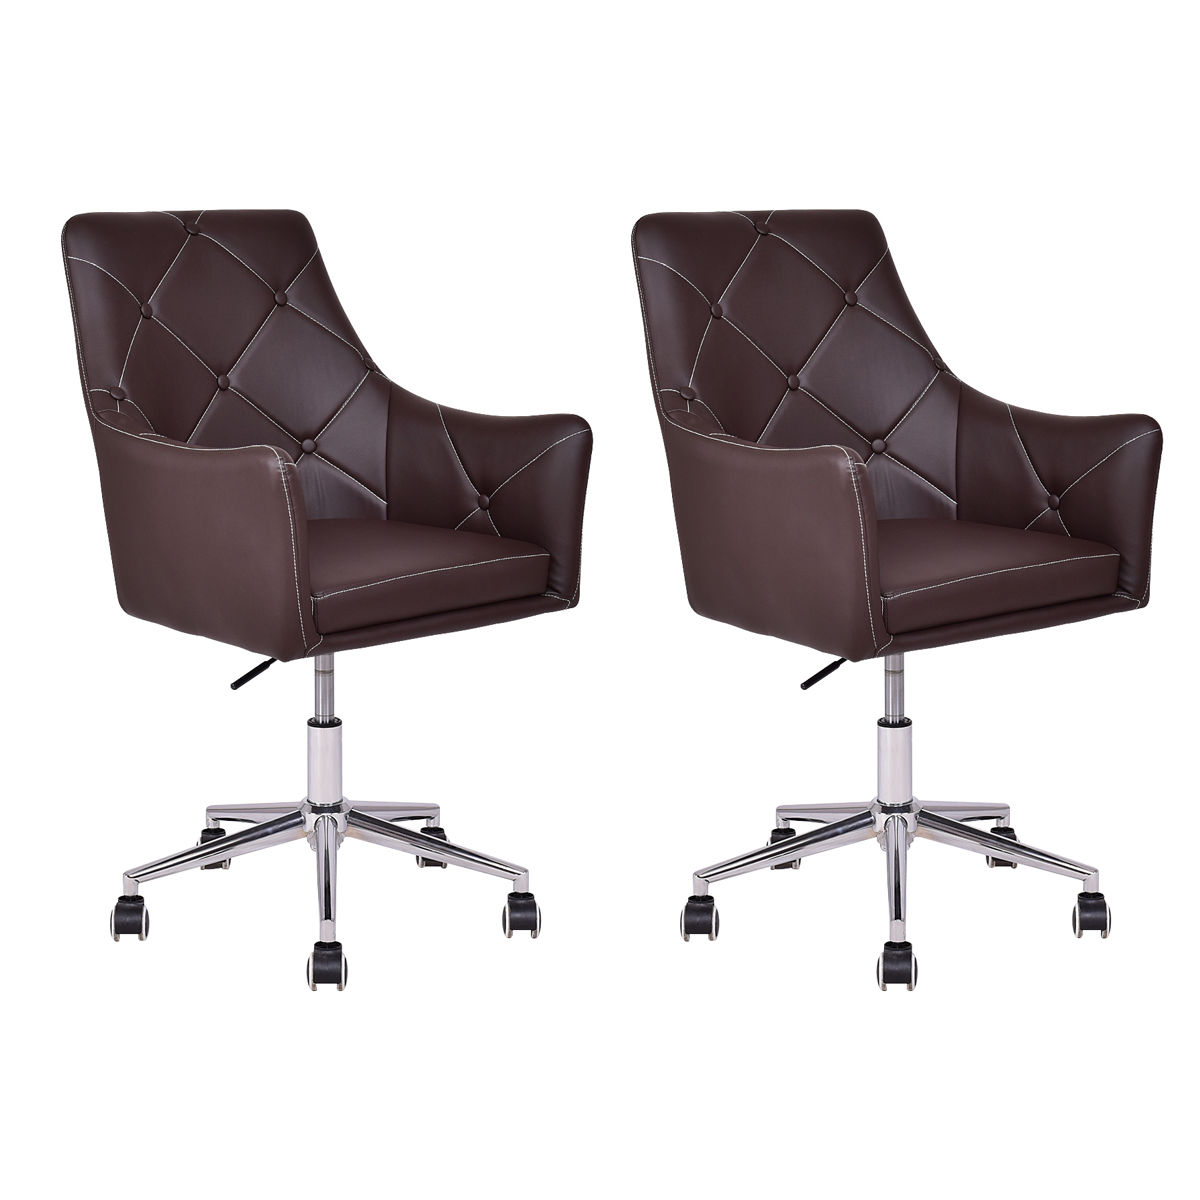 Giantex 2pcs Home Office Task Chair PU Leather Swivel Adjustable Tufted Modern Leisure Chair Back Rolling Furniture HW54933 мышь oklick 745 g legacy black usb